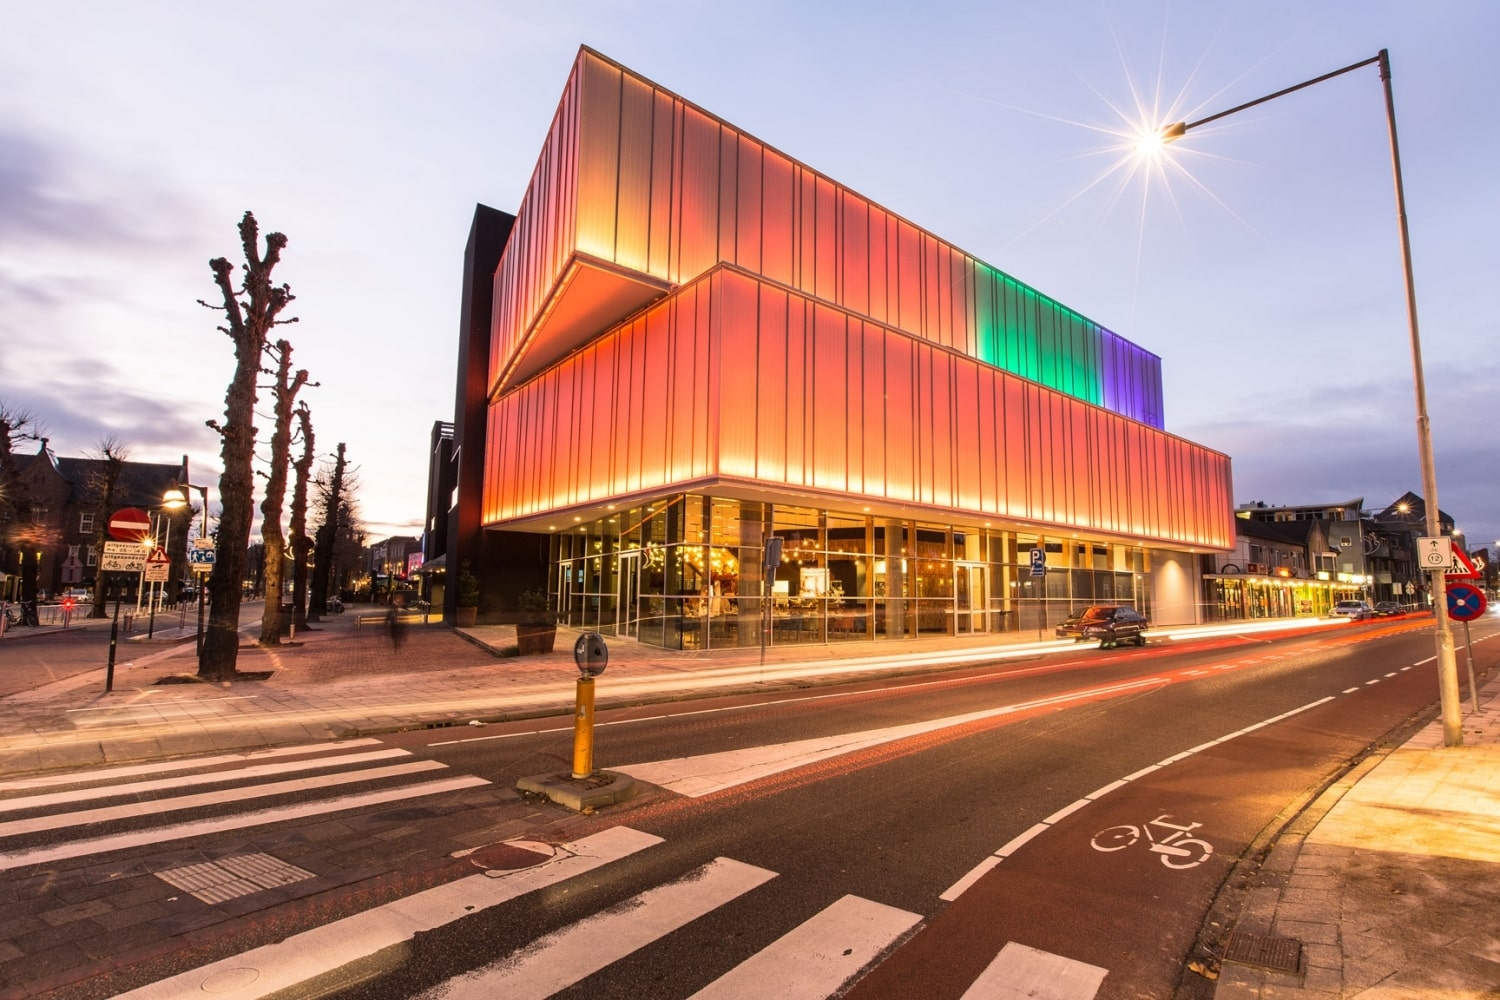 Uden Theatre lighted facade